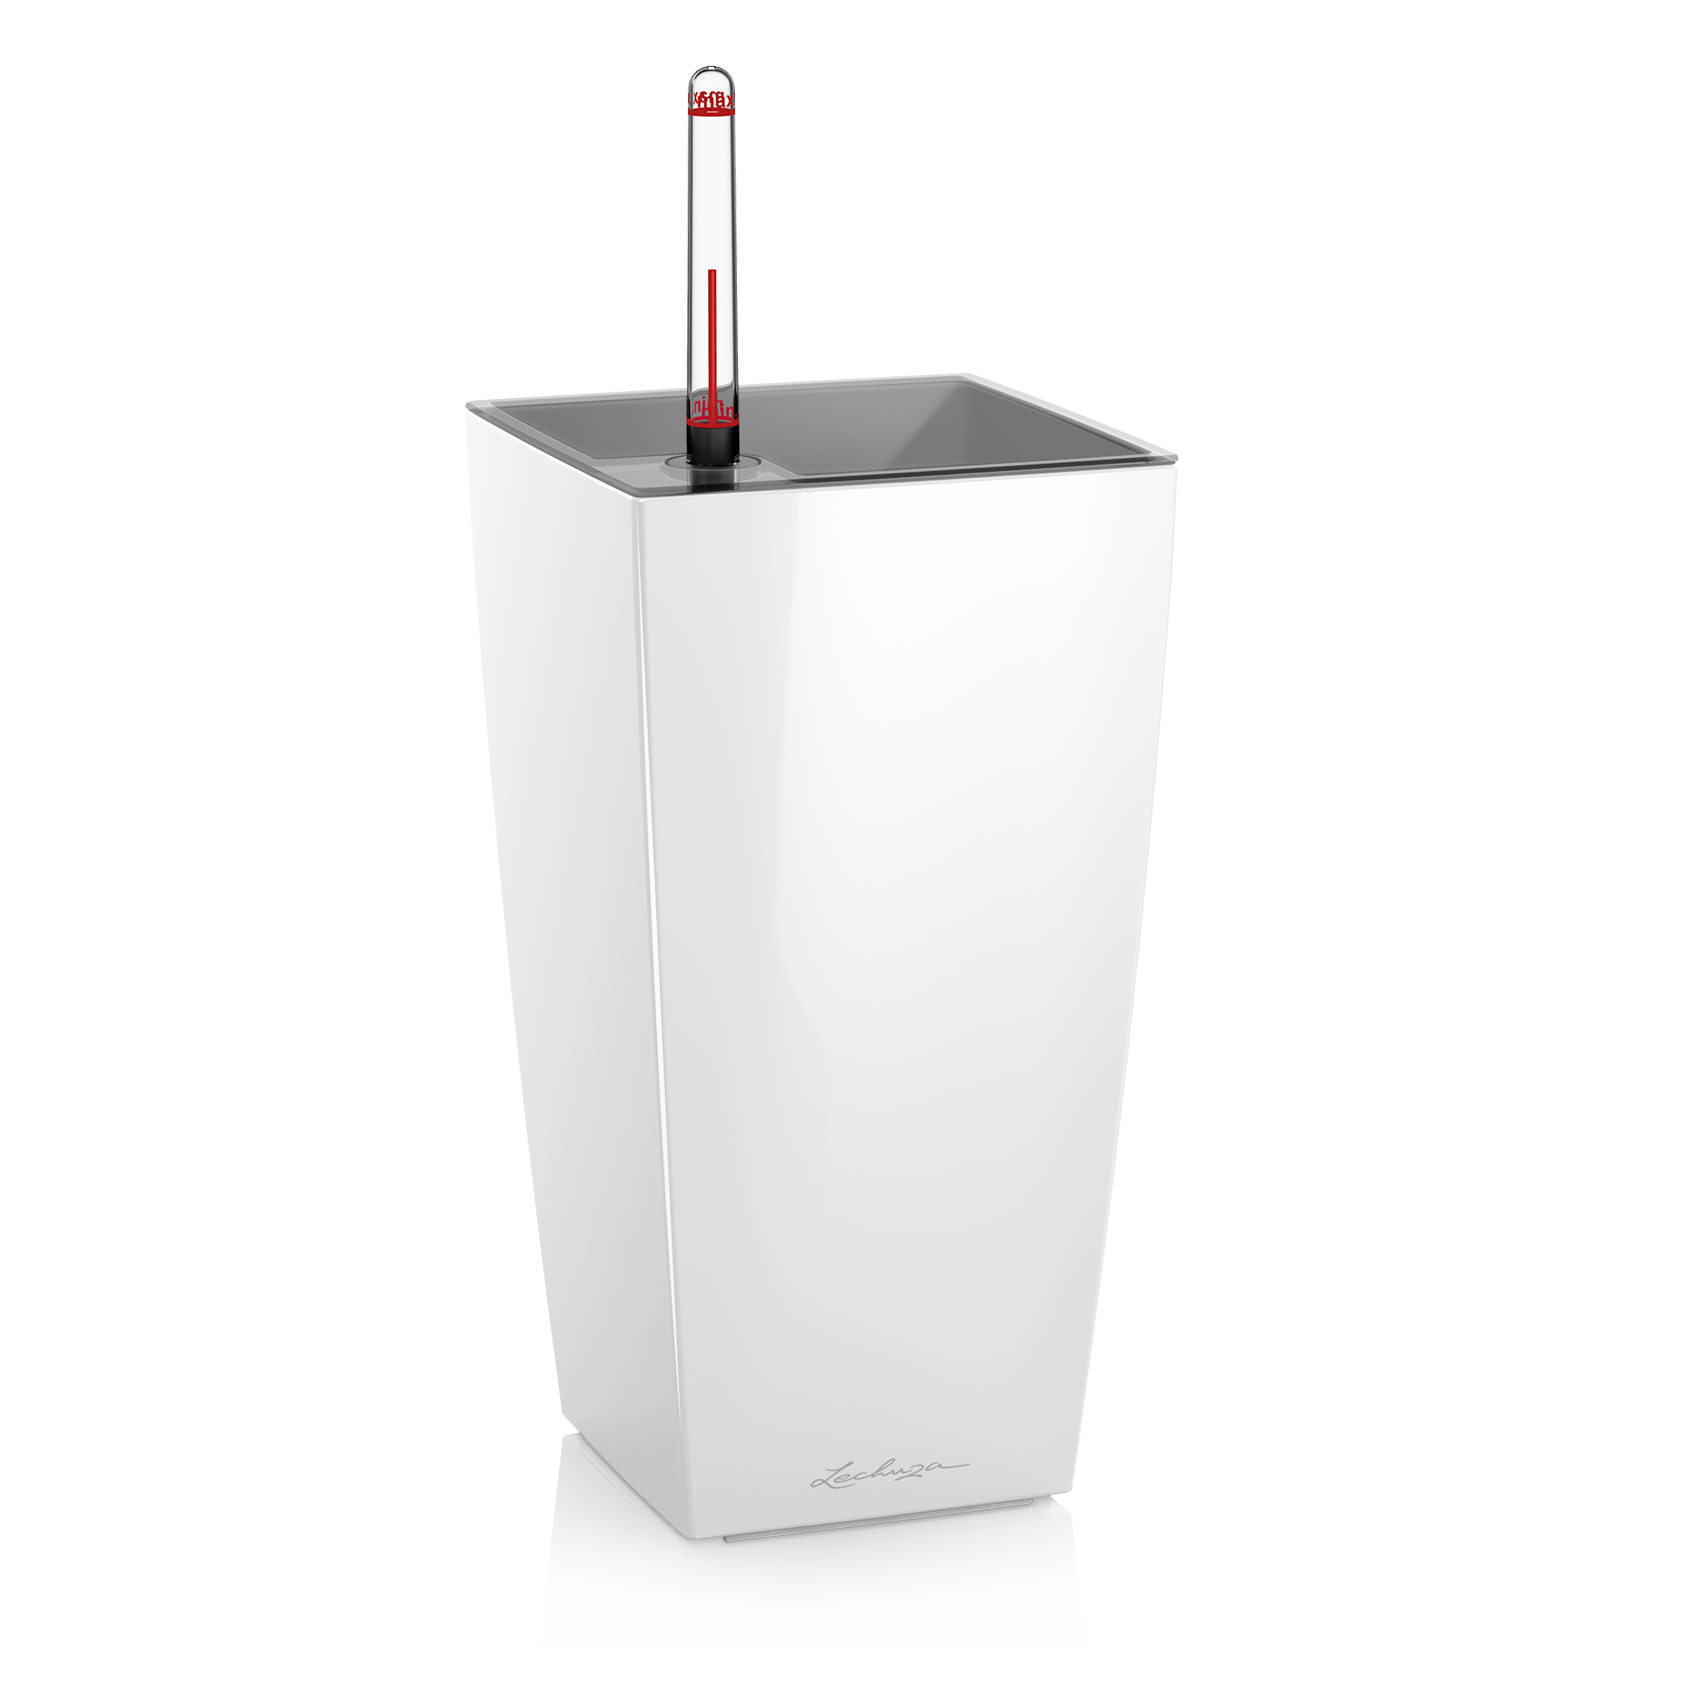 MAXI-CUBI white high-gloss